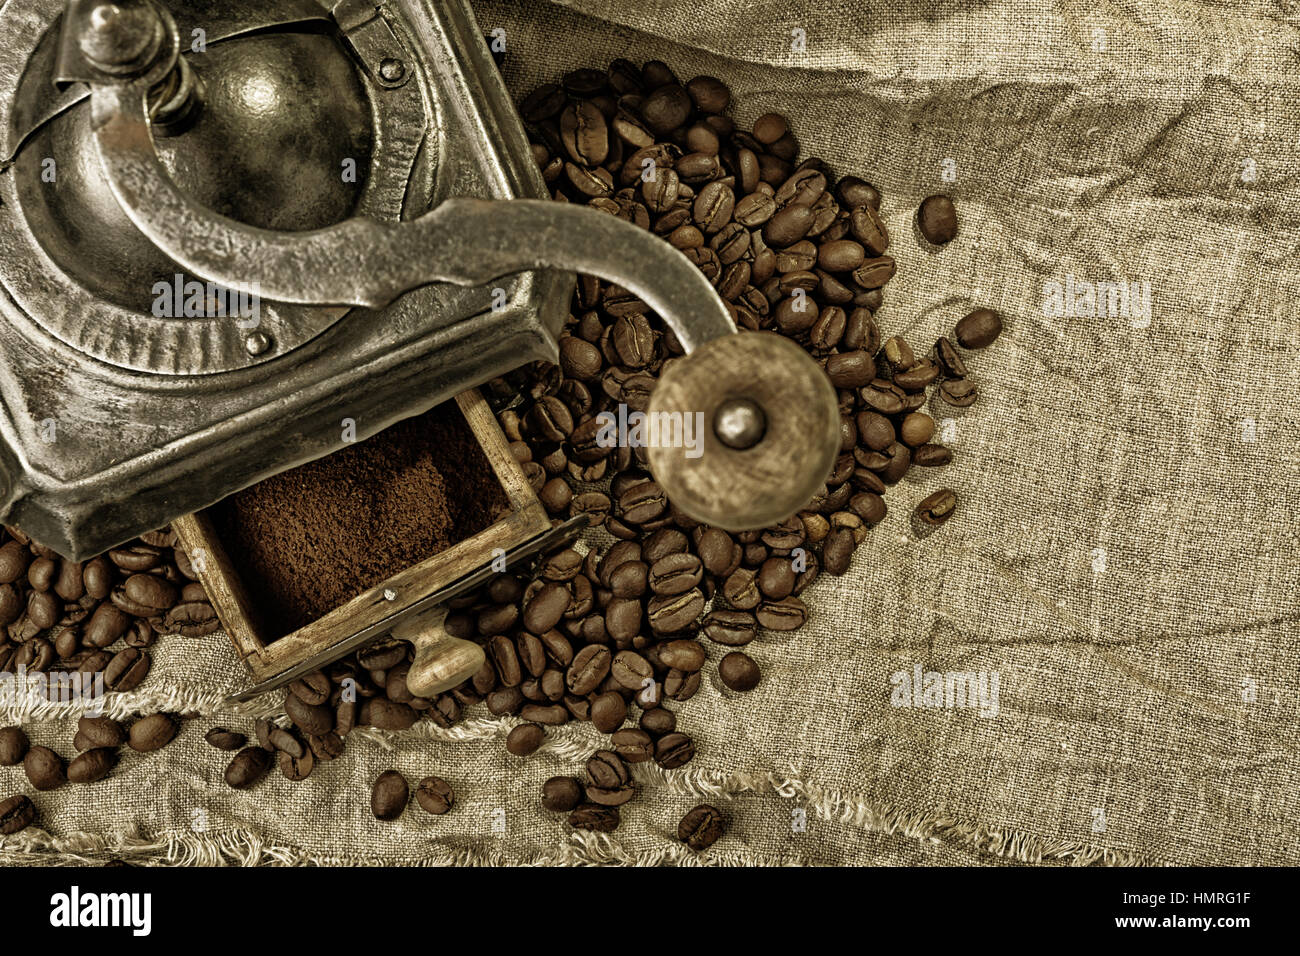 old metal coffee grinder and drawer full of caffee powder on old burlap in sepia tones - Stock Image